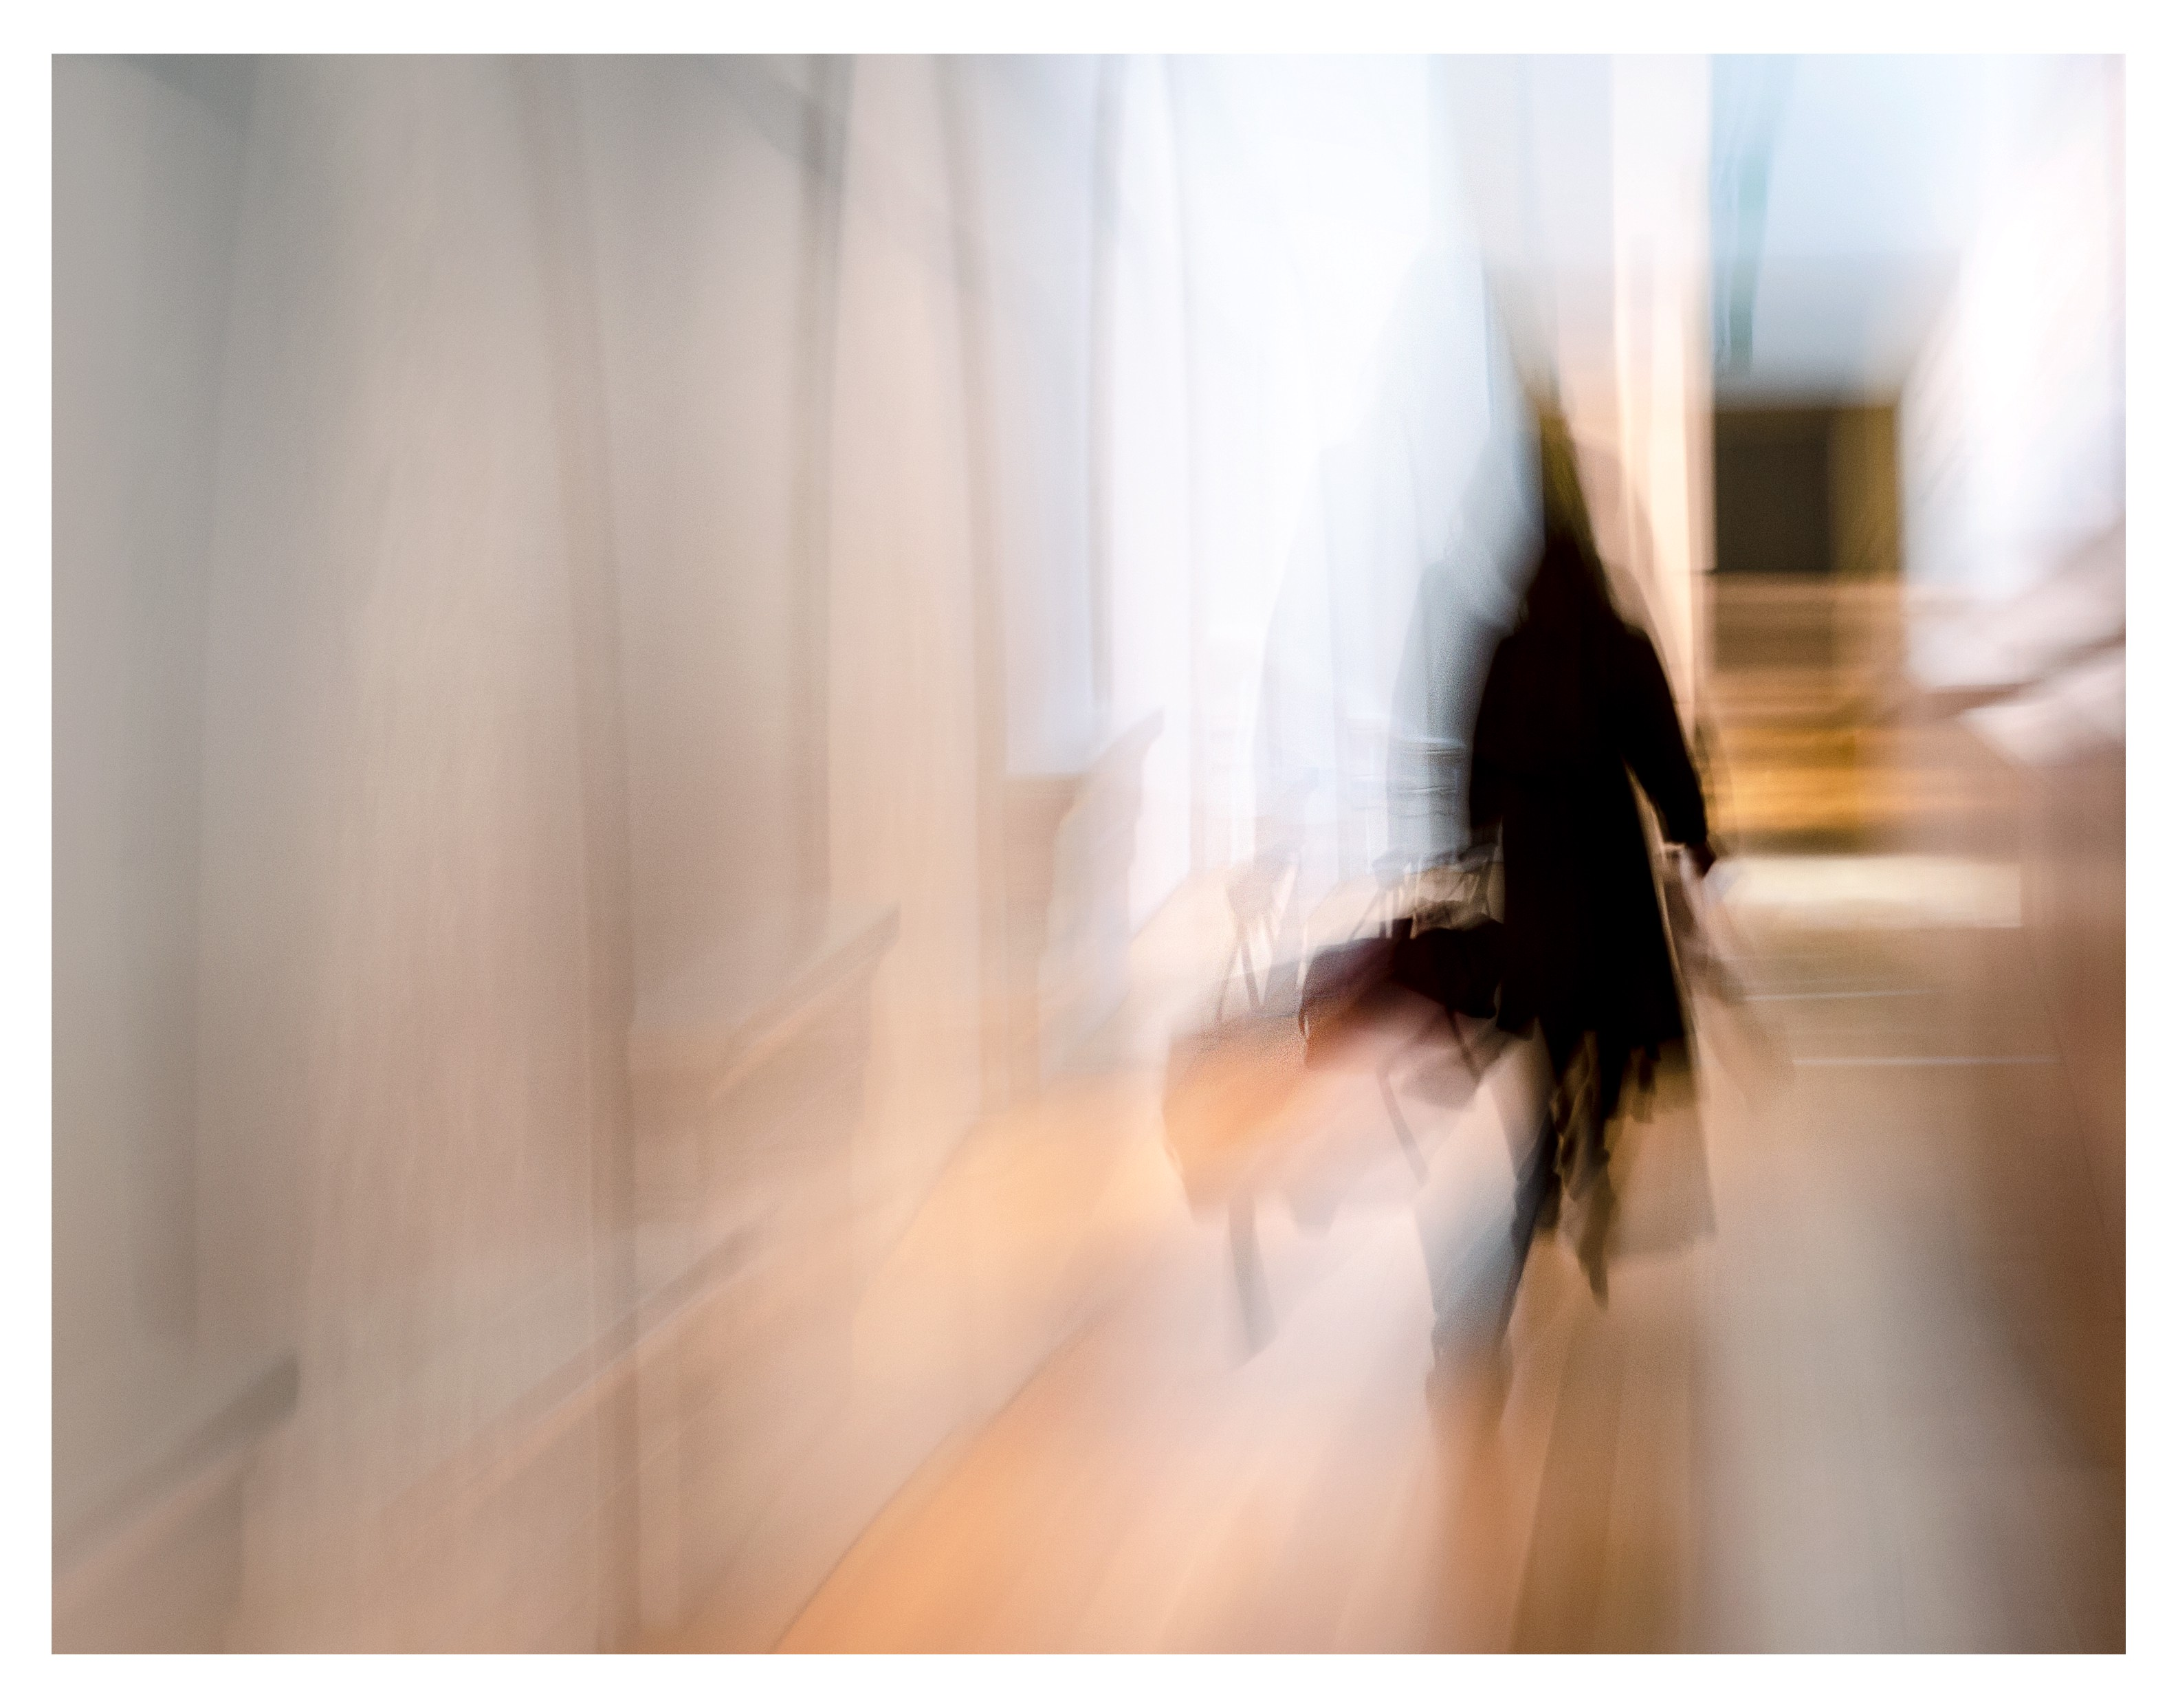 Blurred image of a person carrying a briefcase walking away